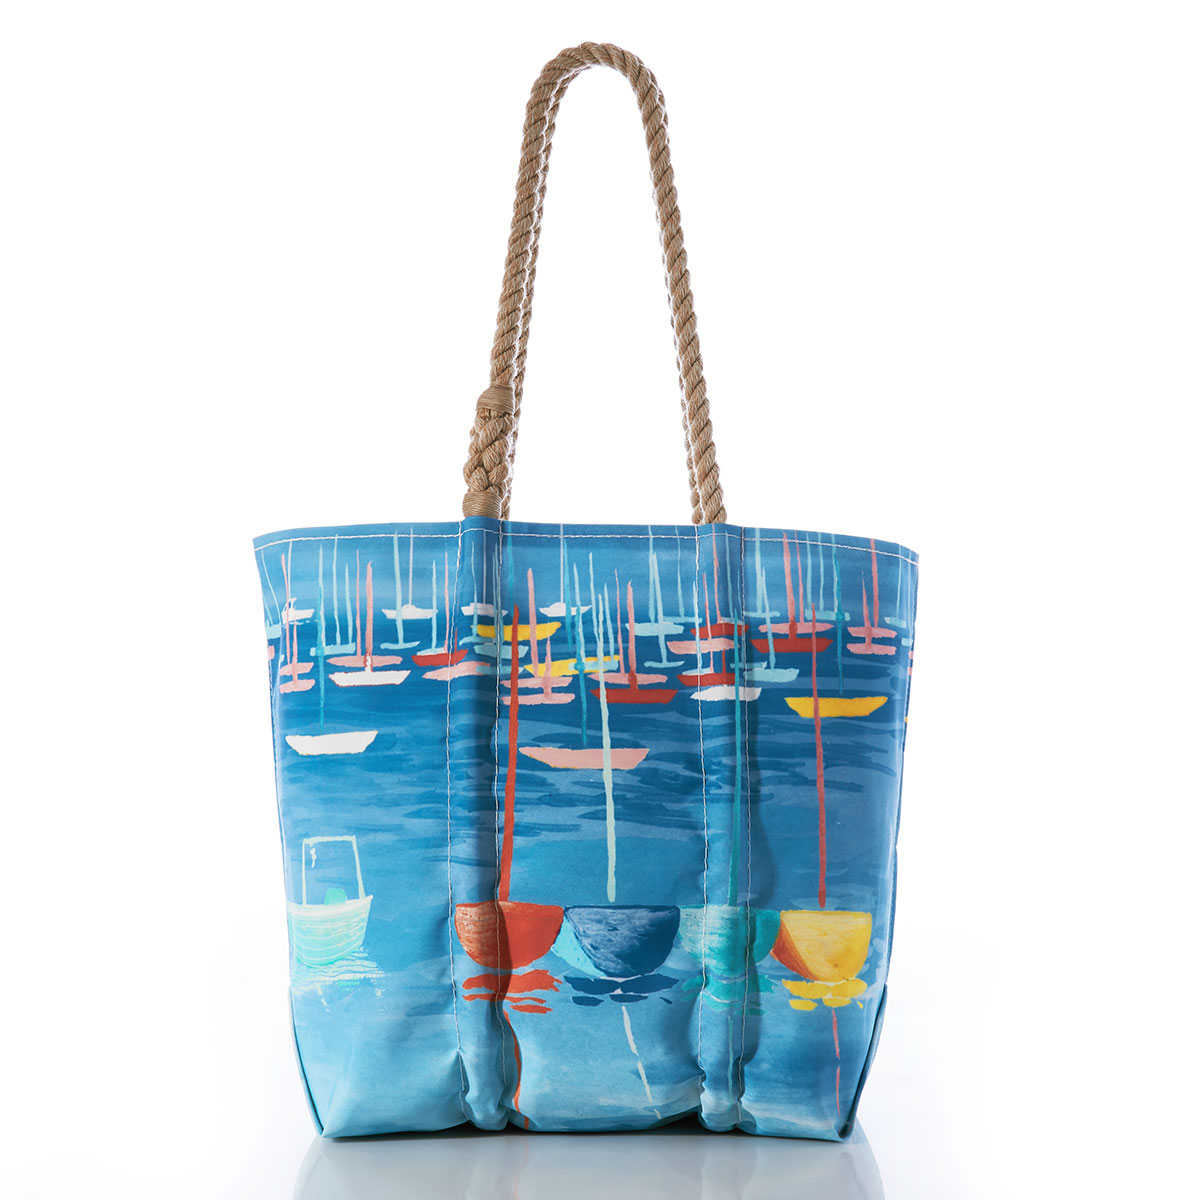 colorful sailboats bob in a blue ocean on a recycled sail cloth tote with hemp rope handles